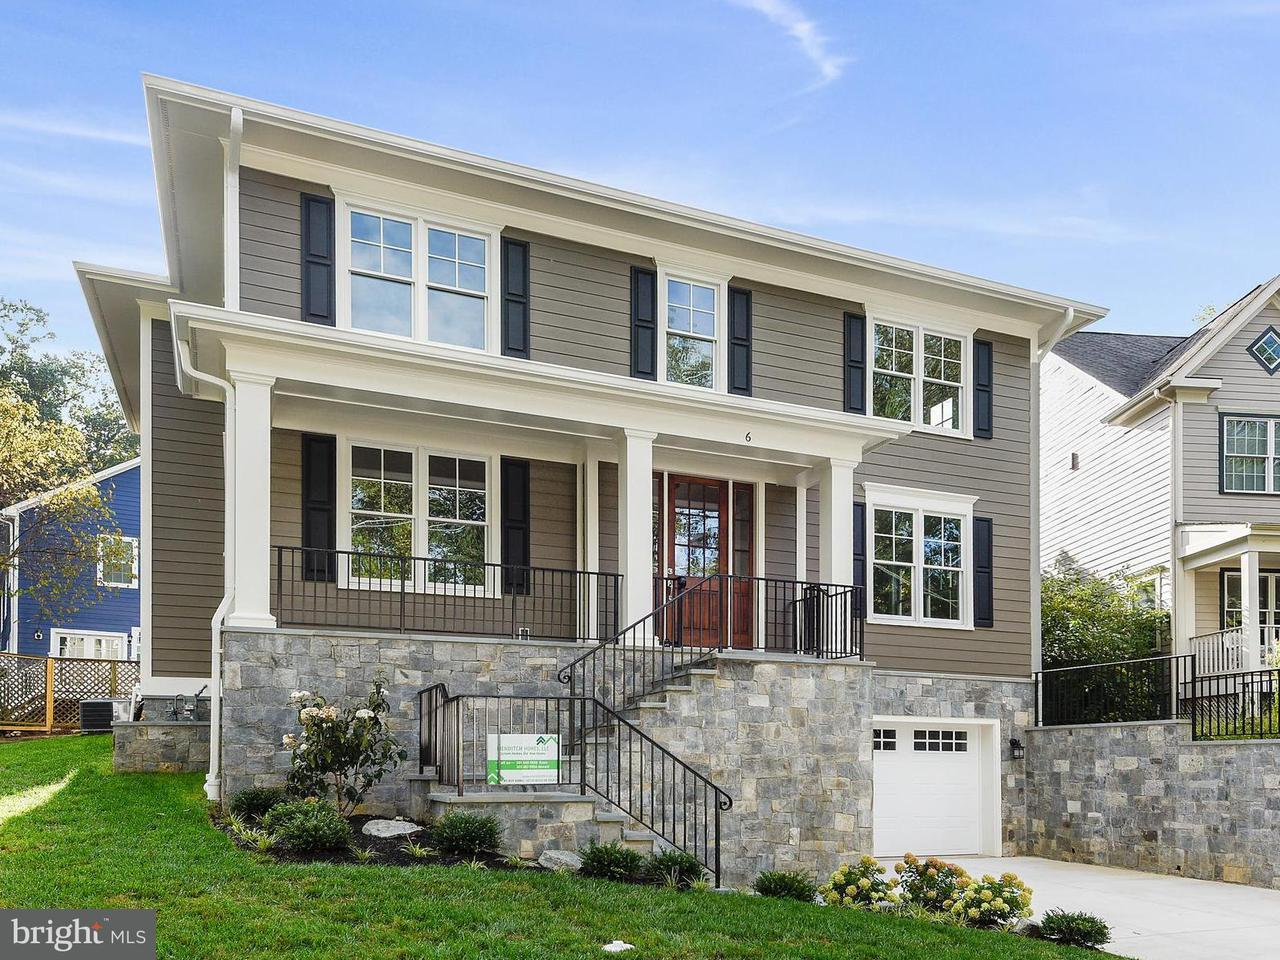 Single Family Home for Sale at 6 Wyoming Court 6 Wyoming Court Bethesda, Maryland 20816 United States